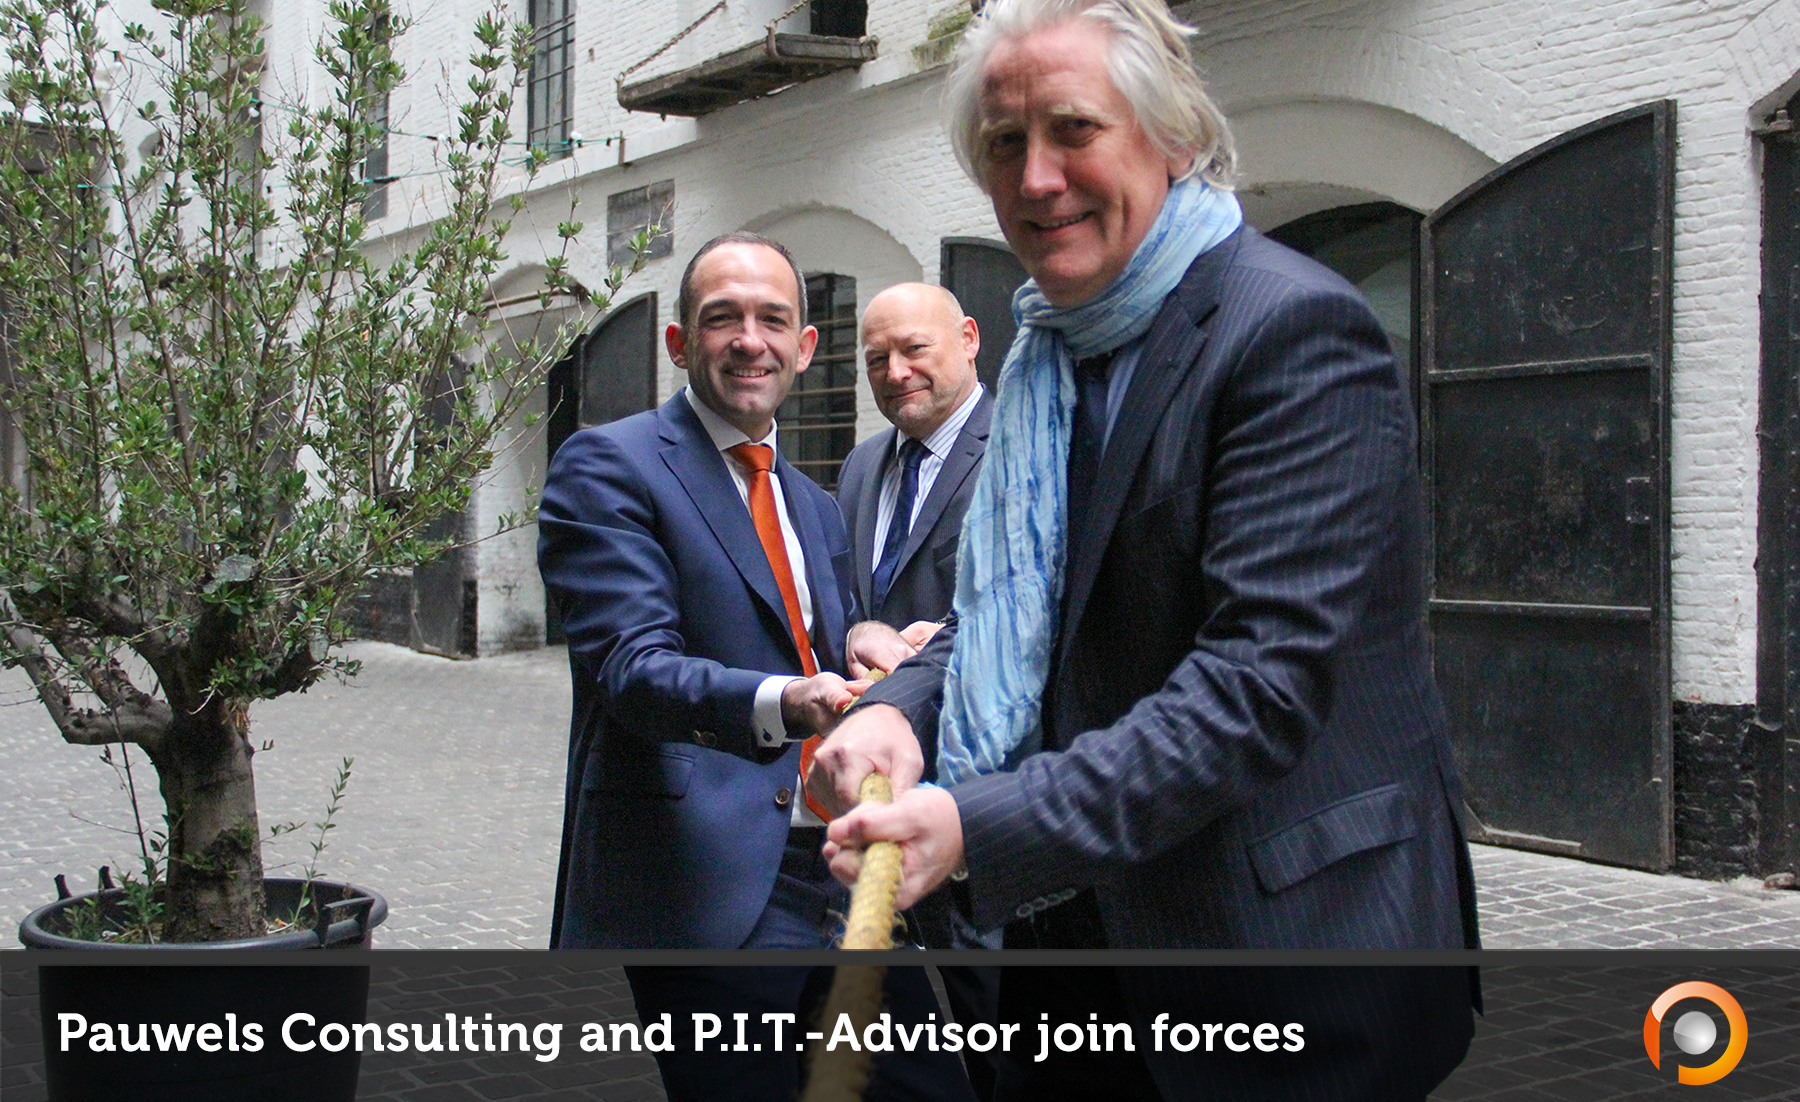 Pauwels Consulting and PIT Advisor join forces